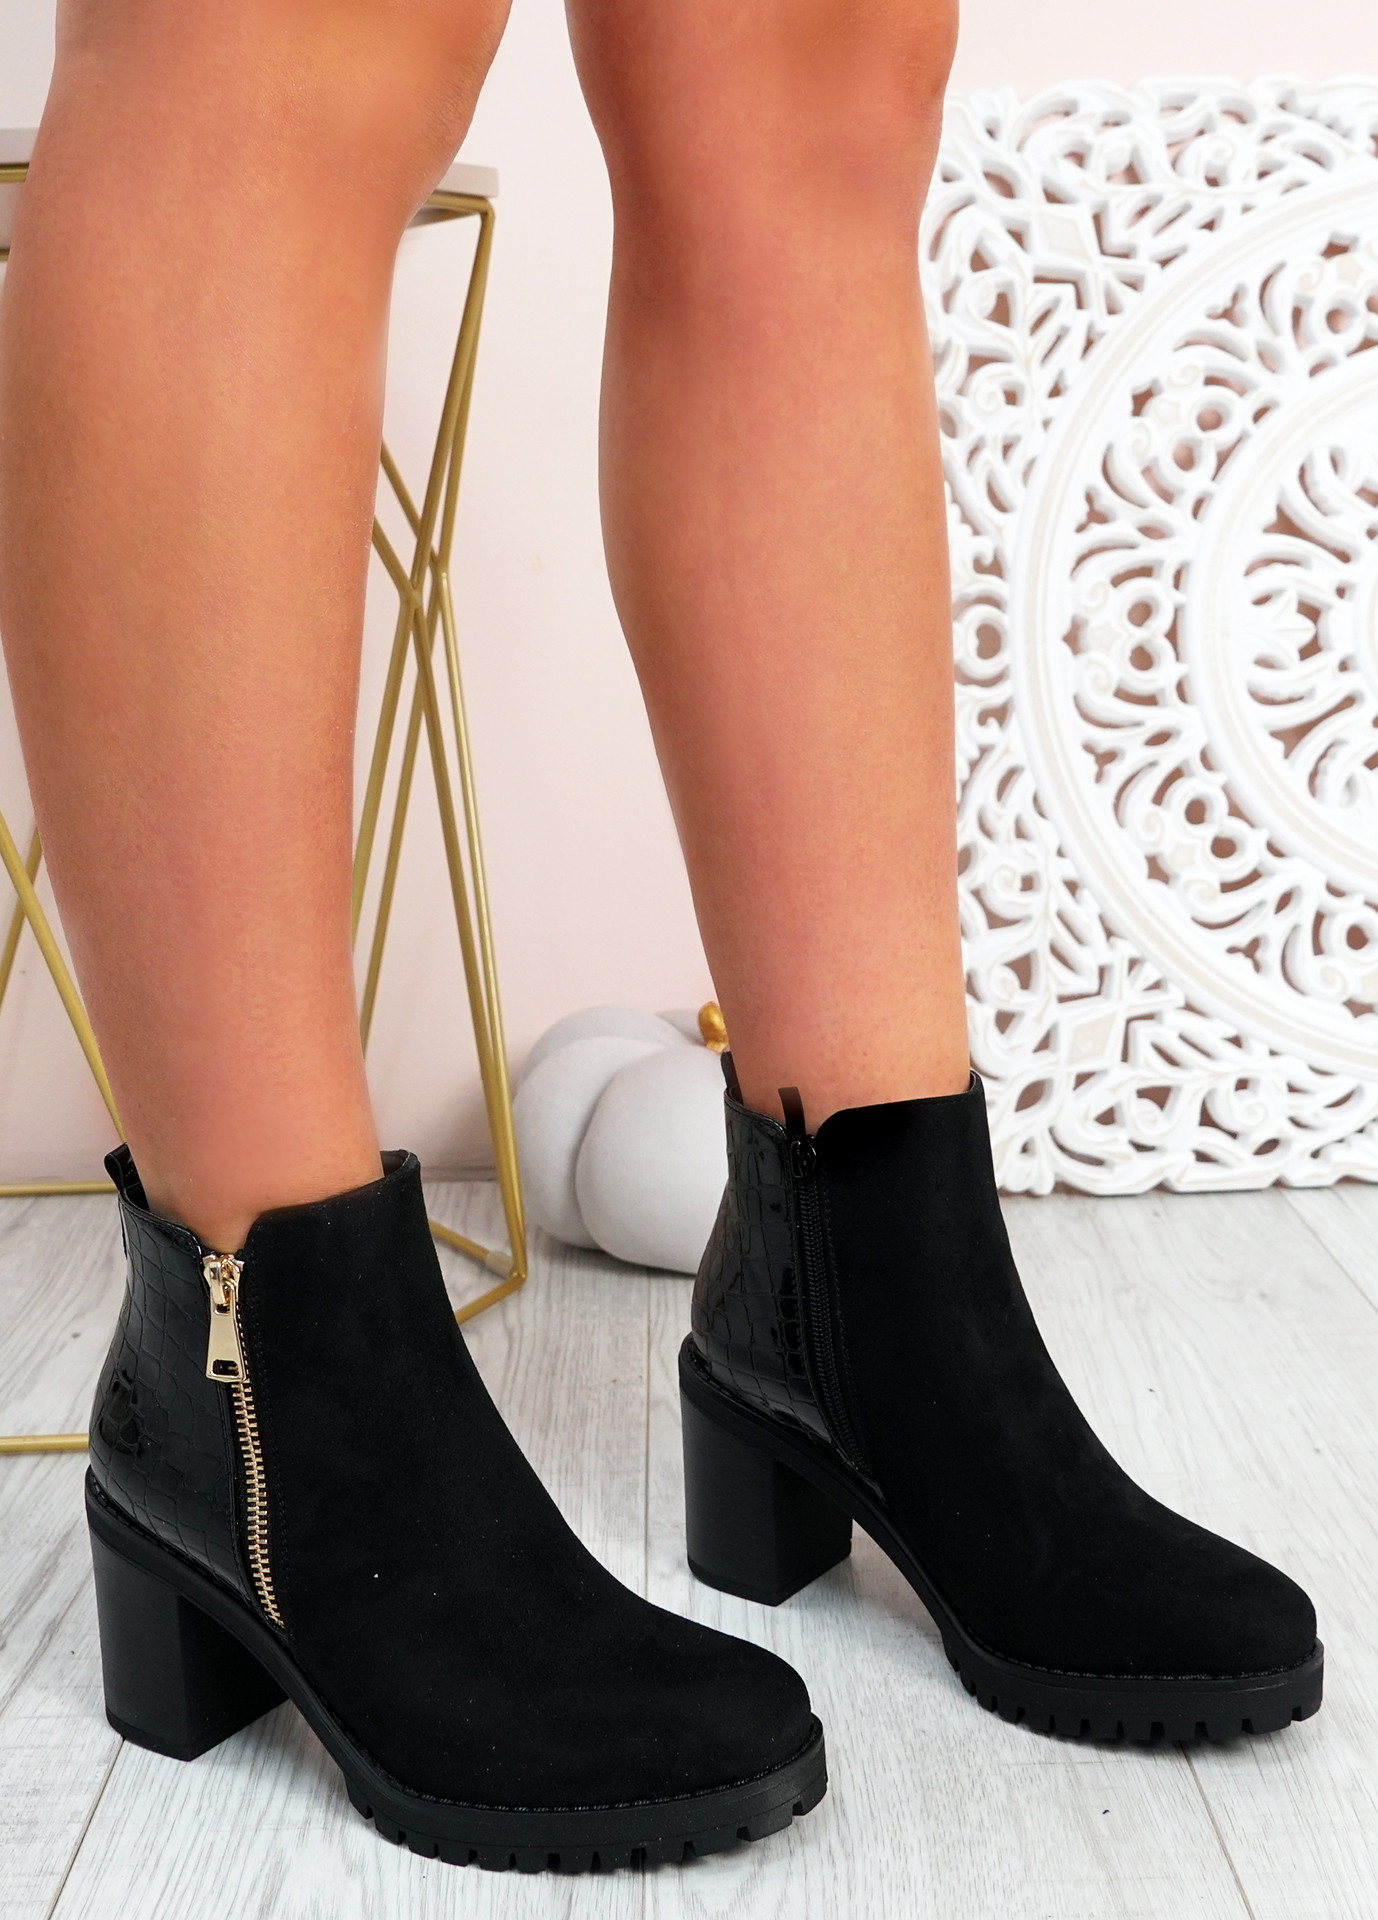 Makaila Black Suede Block Heel Ankle Boots